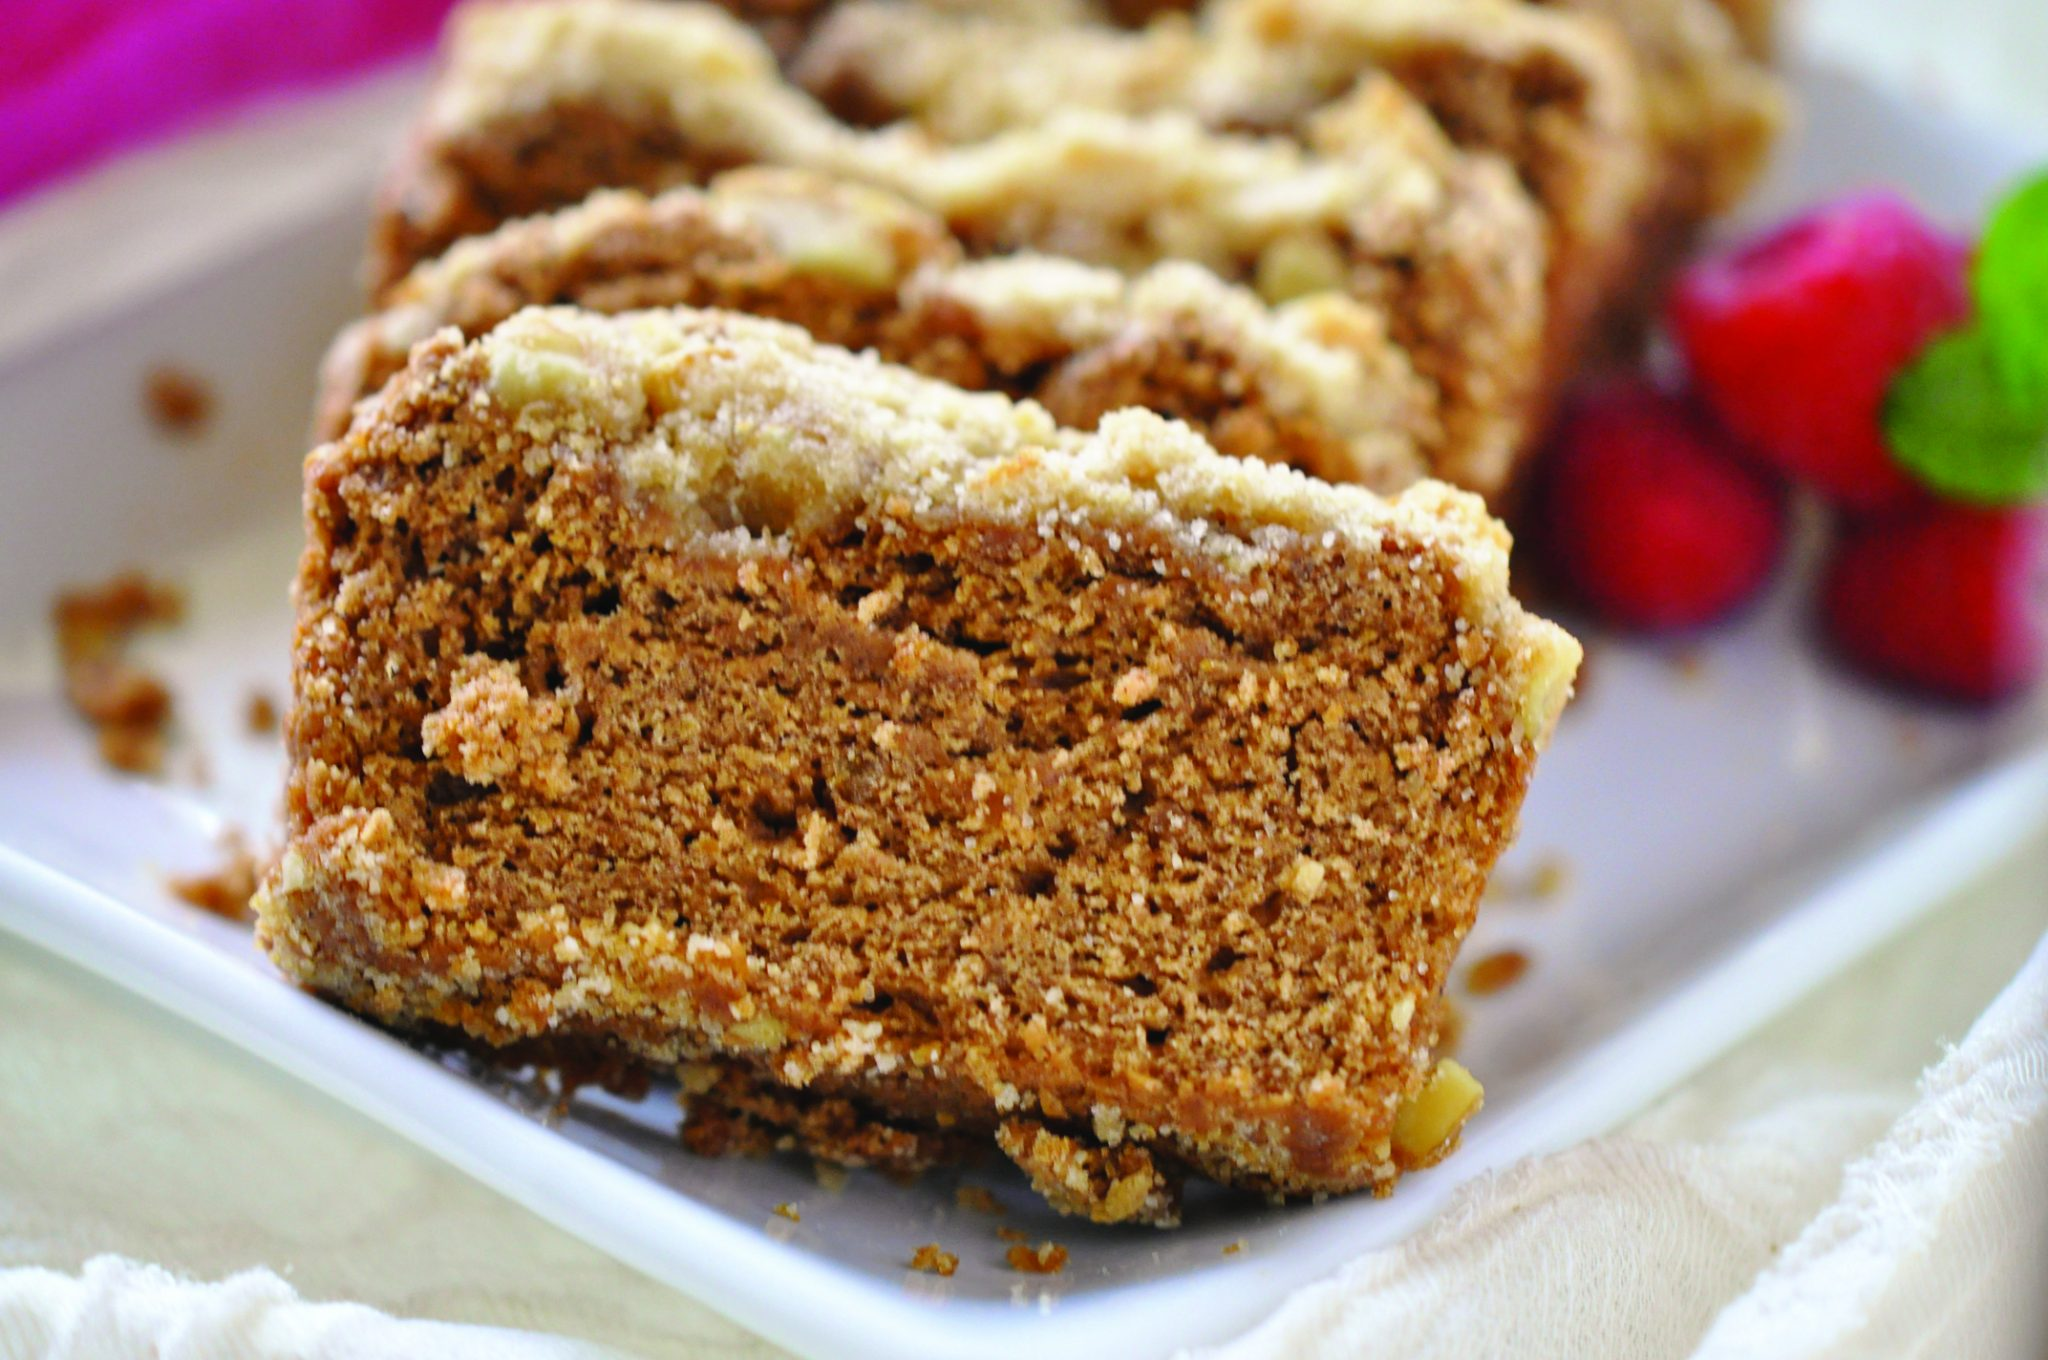 Recipes to make with spice cake mix